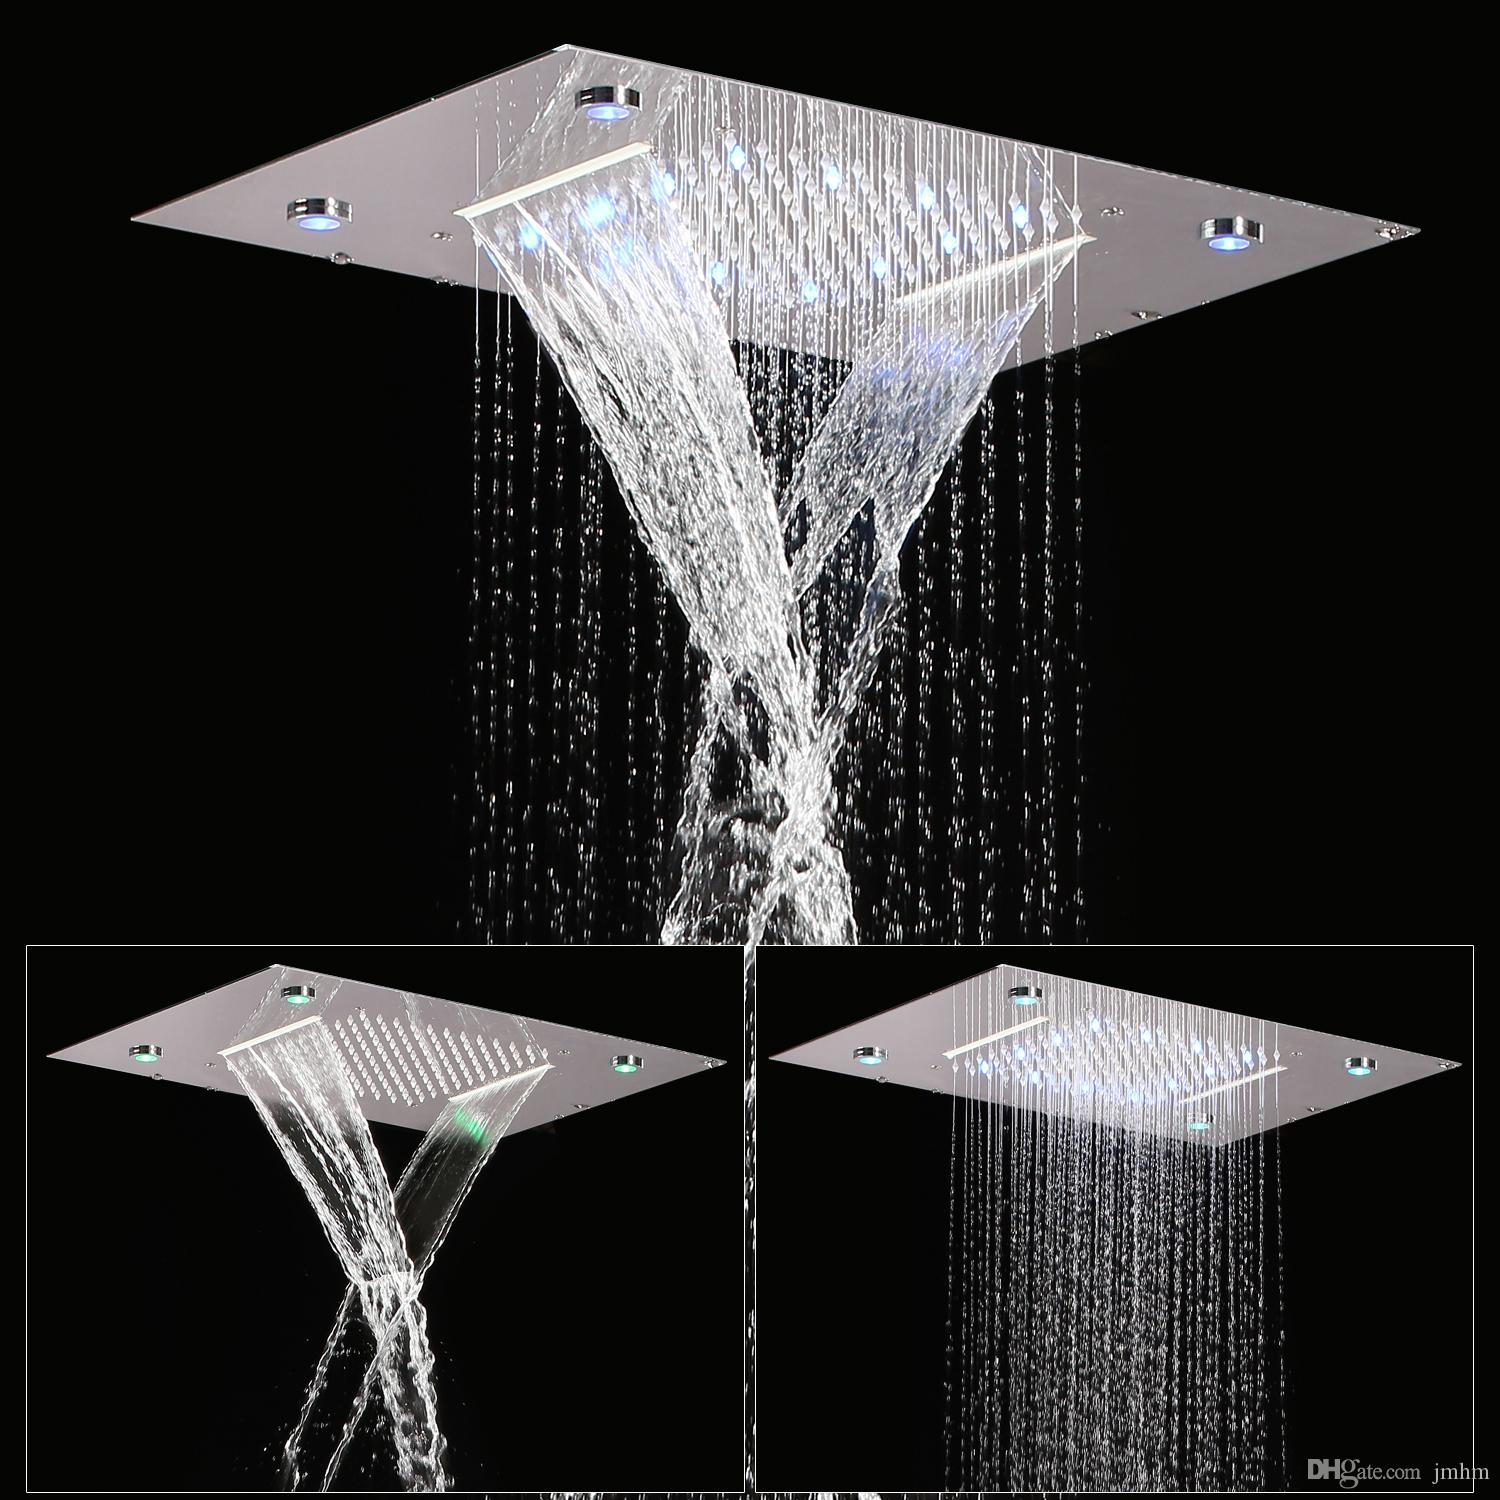 2019 Stainless Steel Ceiling Mount 360x500mm Rainbow Color Rainfall Waterfall Overhead Shower Multi Function Led Shower Panel Massage Spray From Jmhm